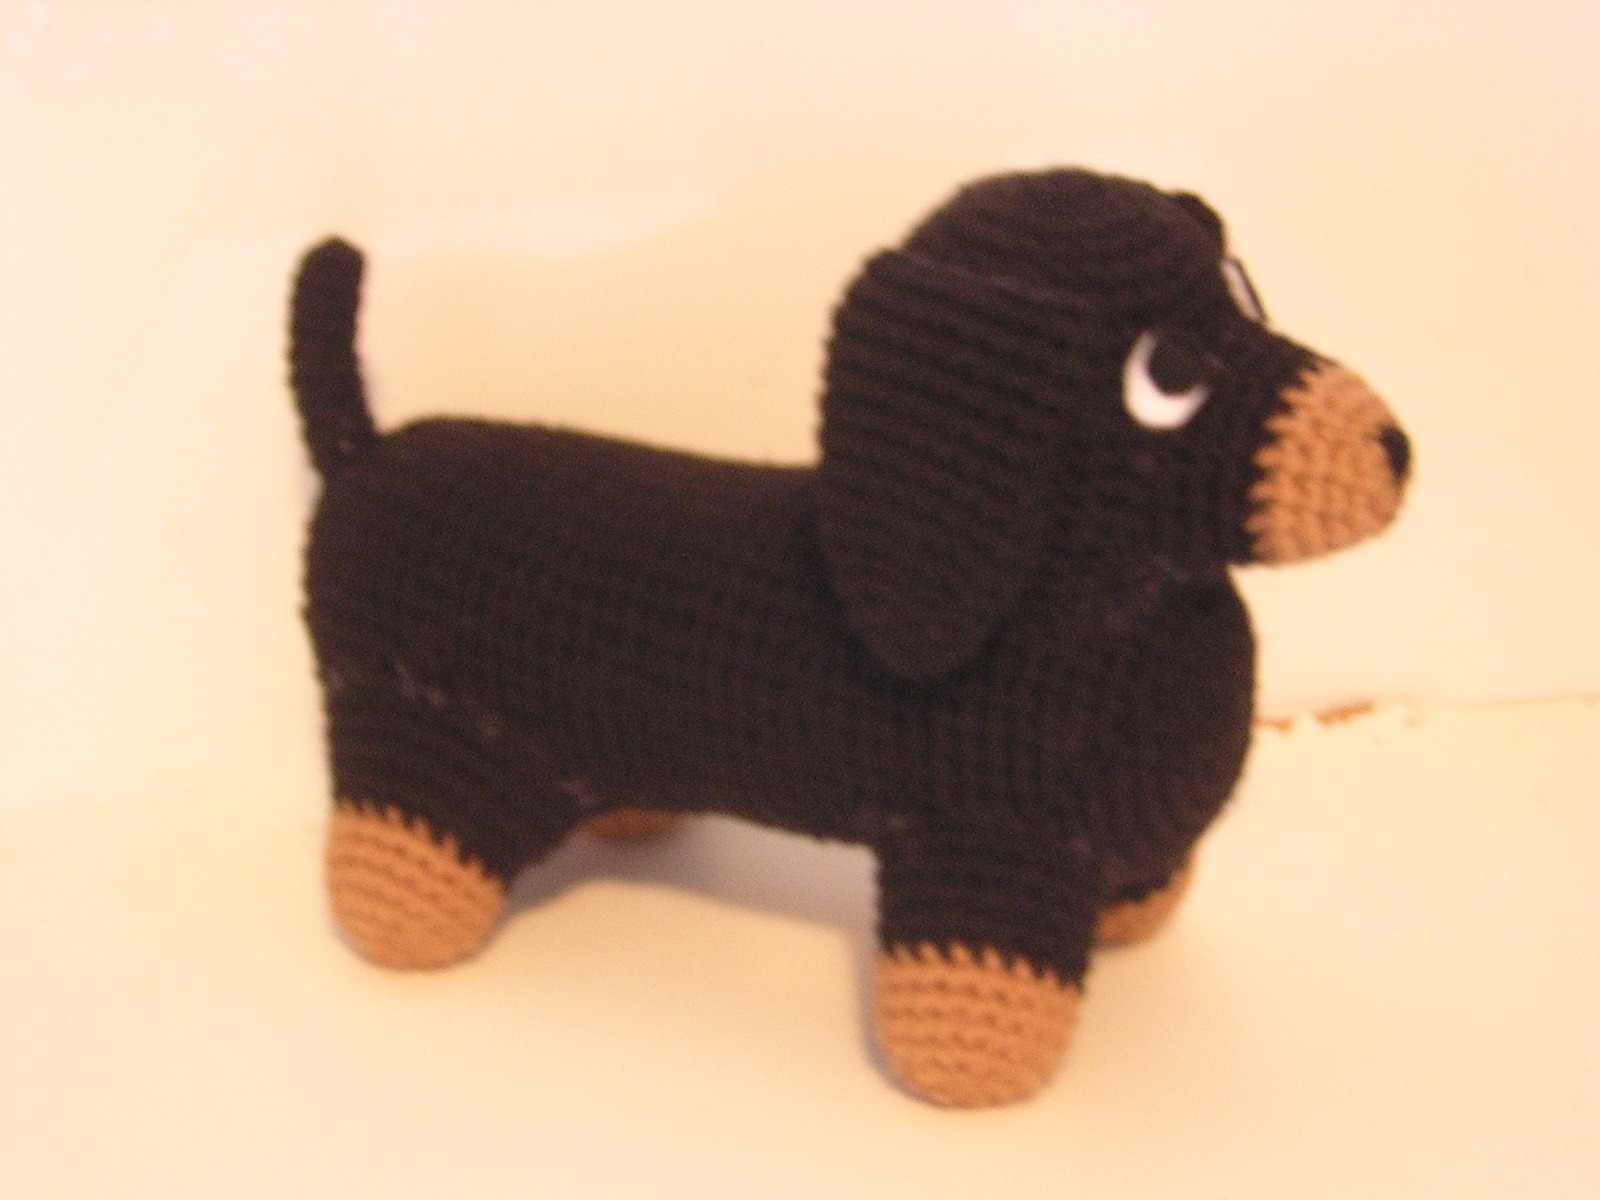 Crochet Cute Amigurumi Dachshund Dog Part 1 of 2 DIY Video ... | 1200x1600